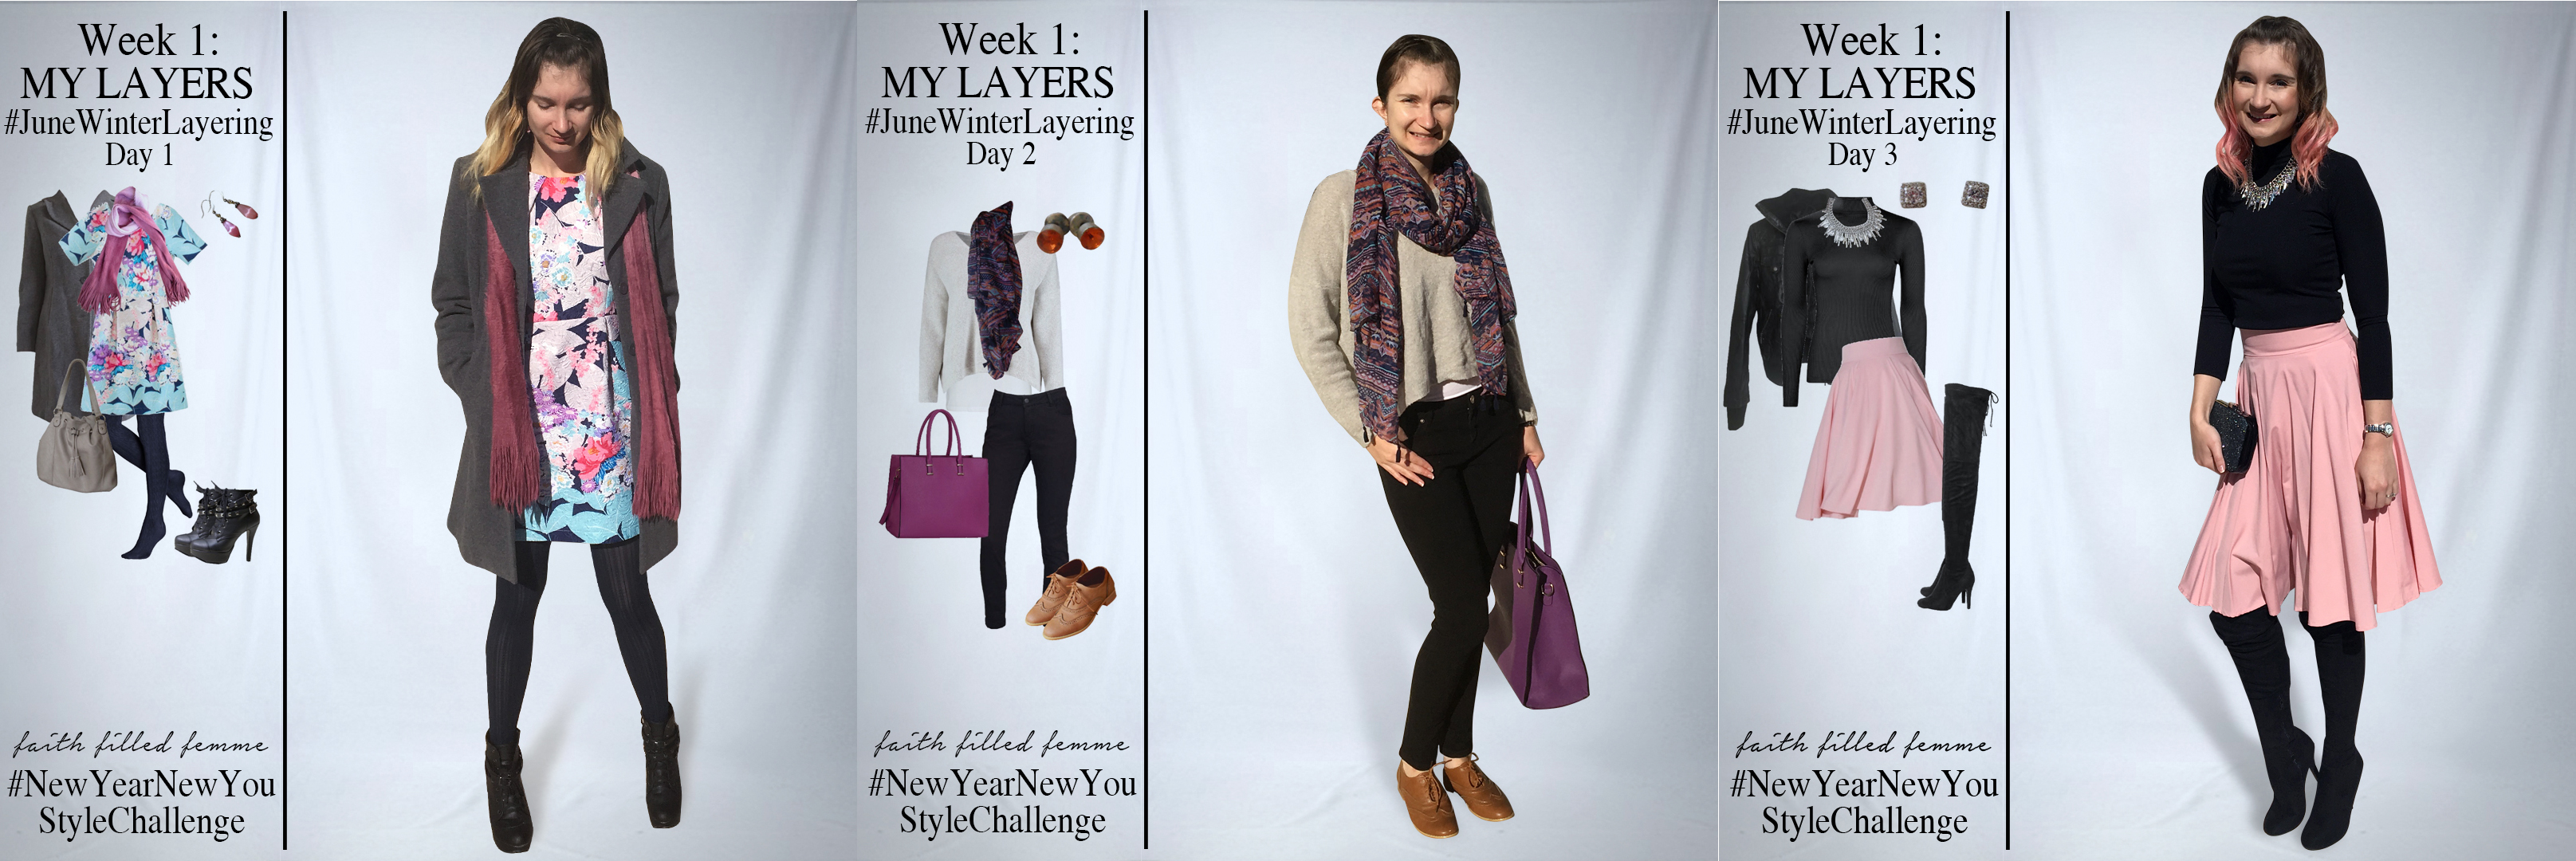 June Winter Layering Preweek Outfit Ideas